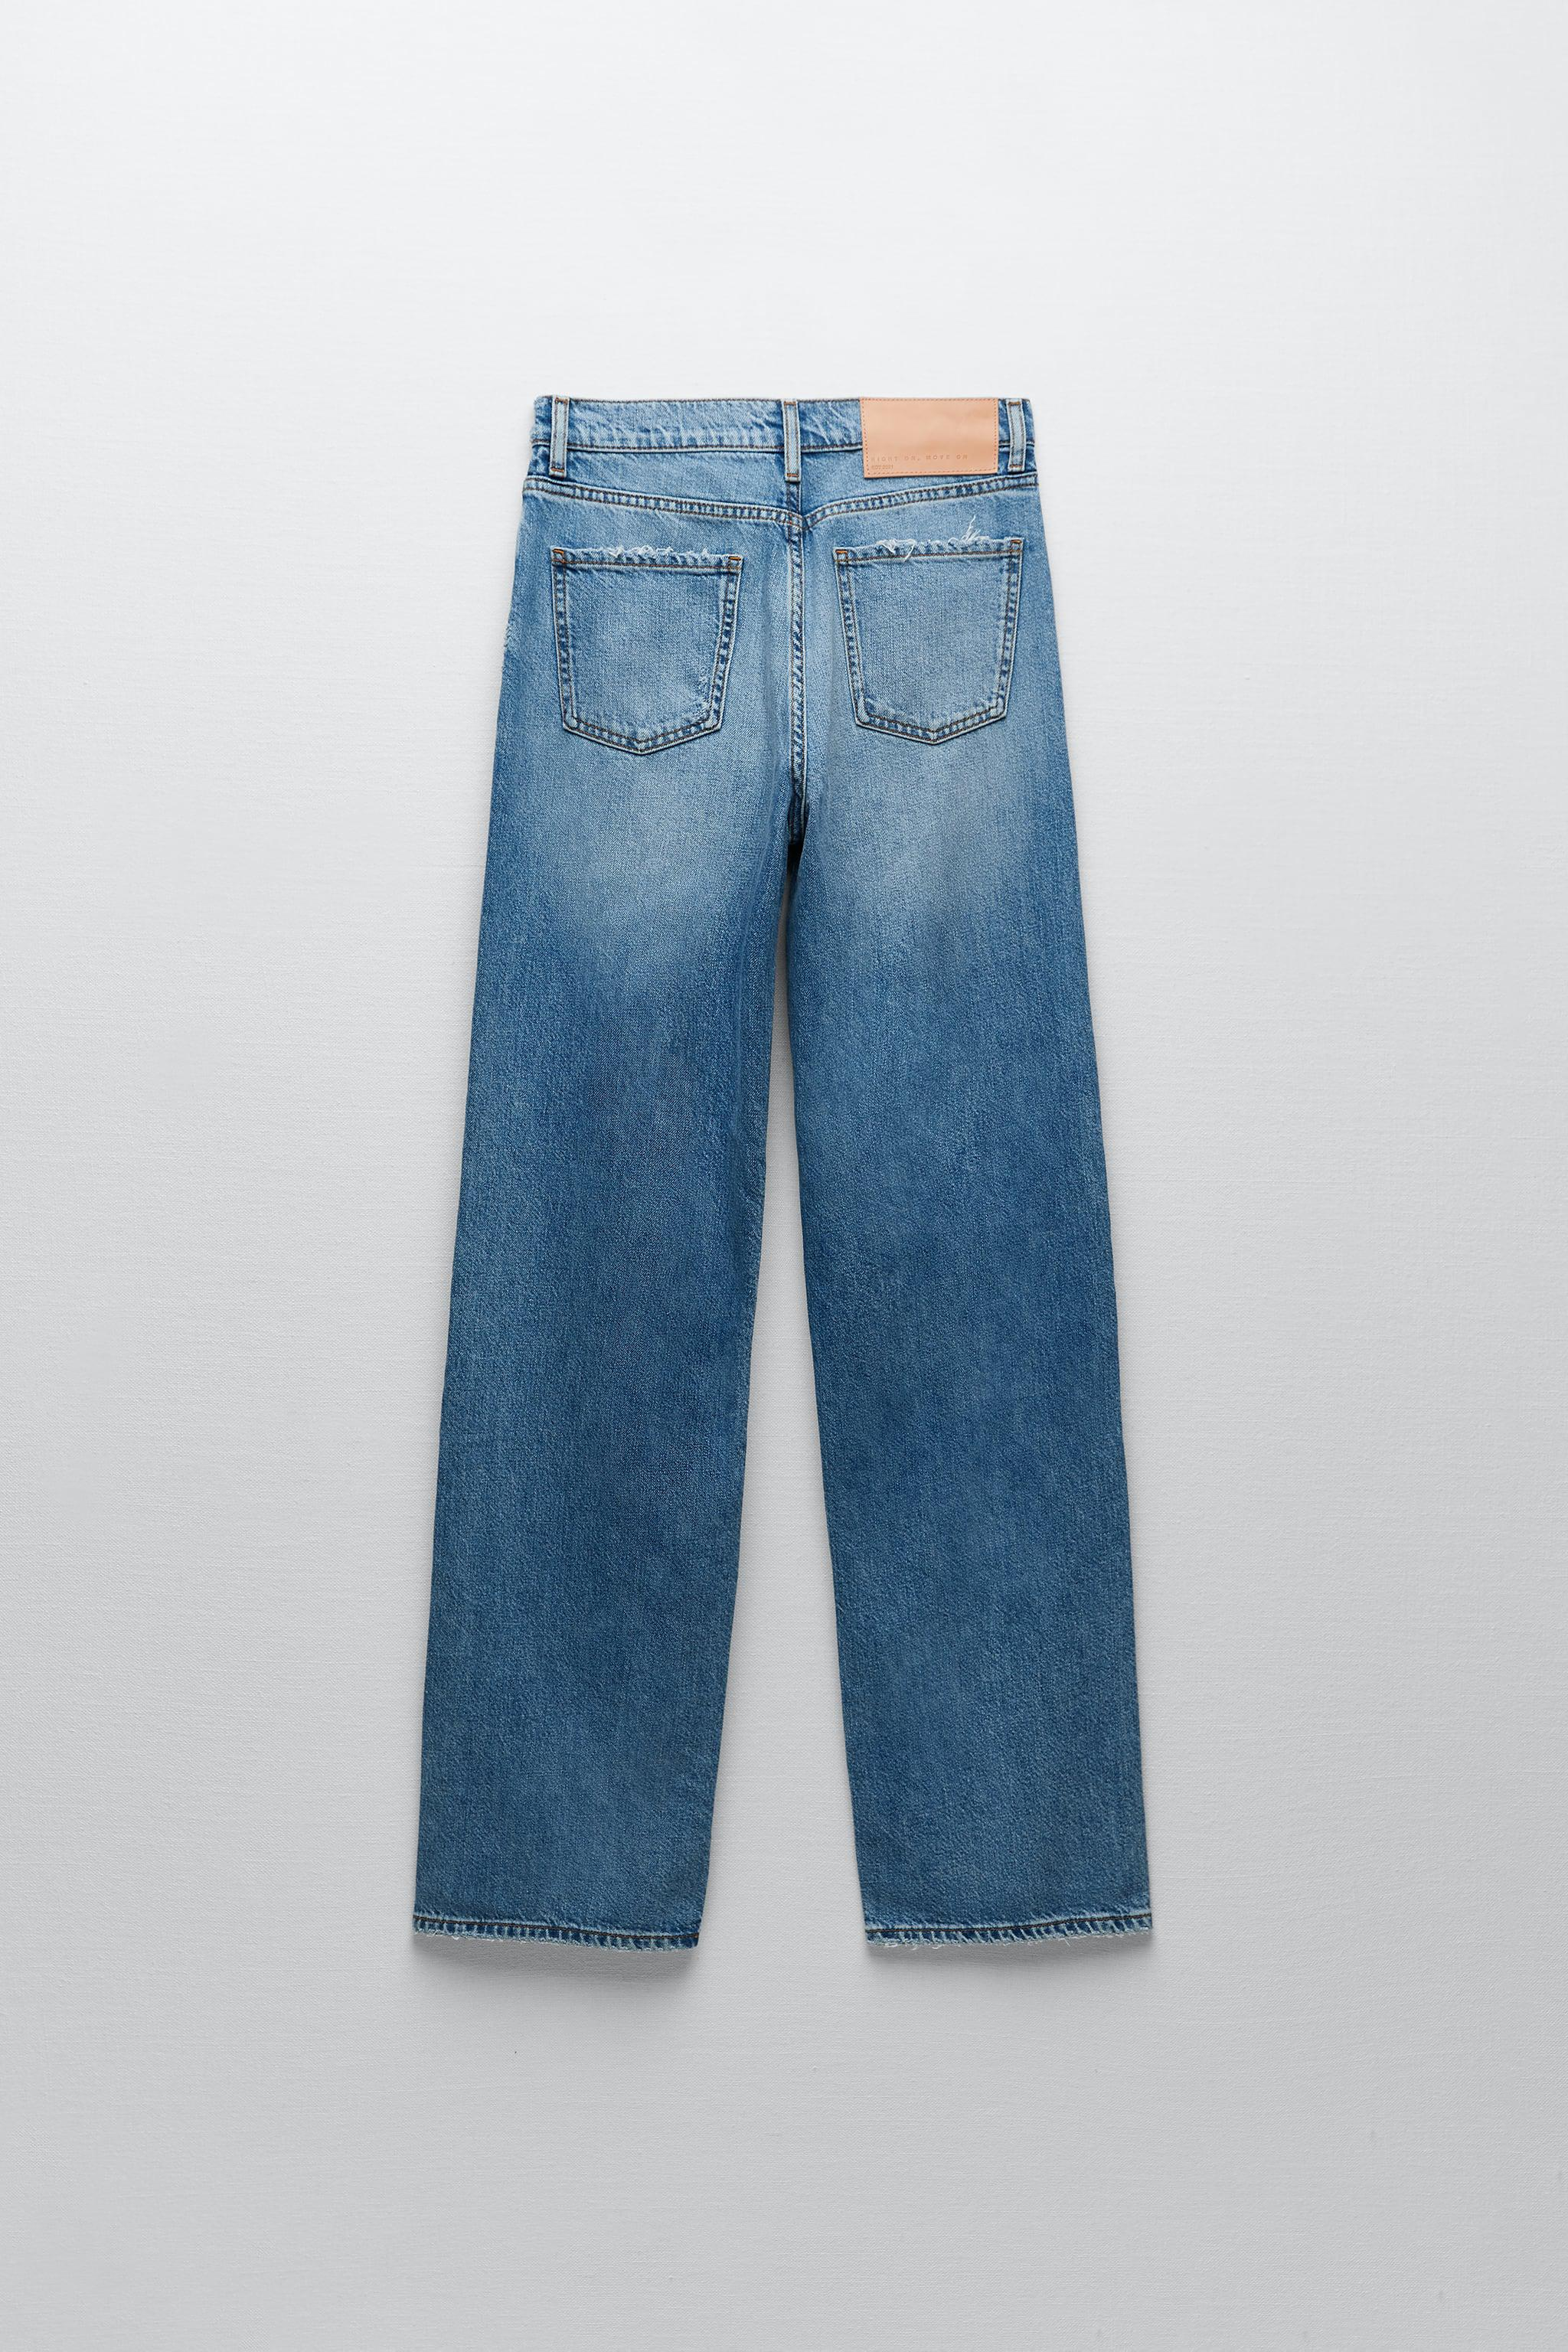 THE BOO FULL LENGTH ZW JEANS 4